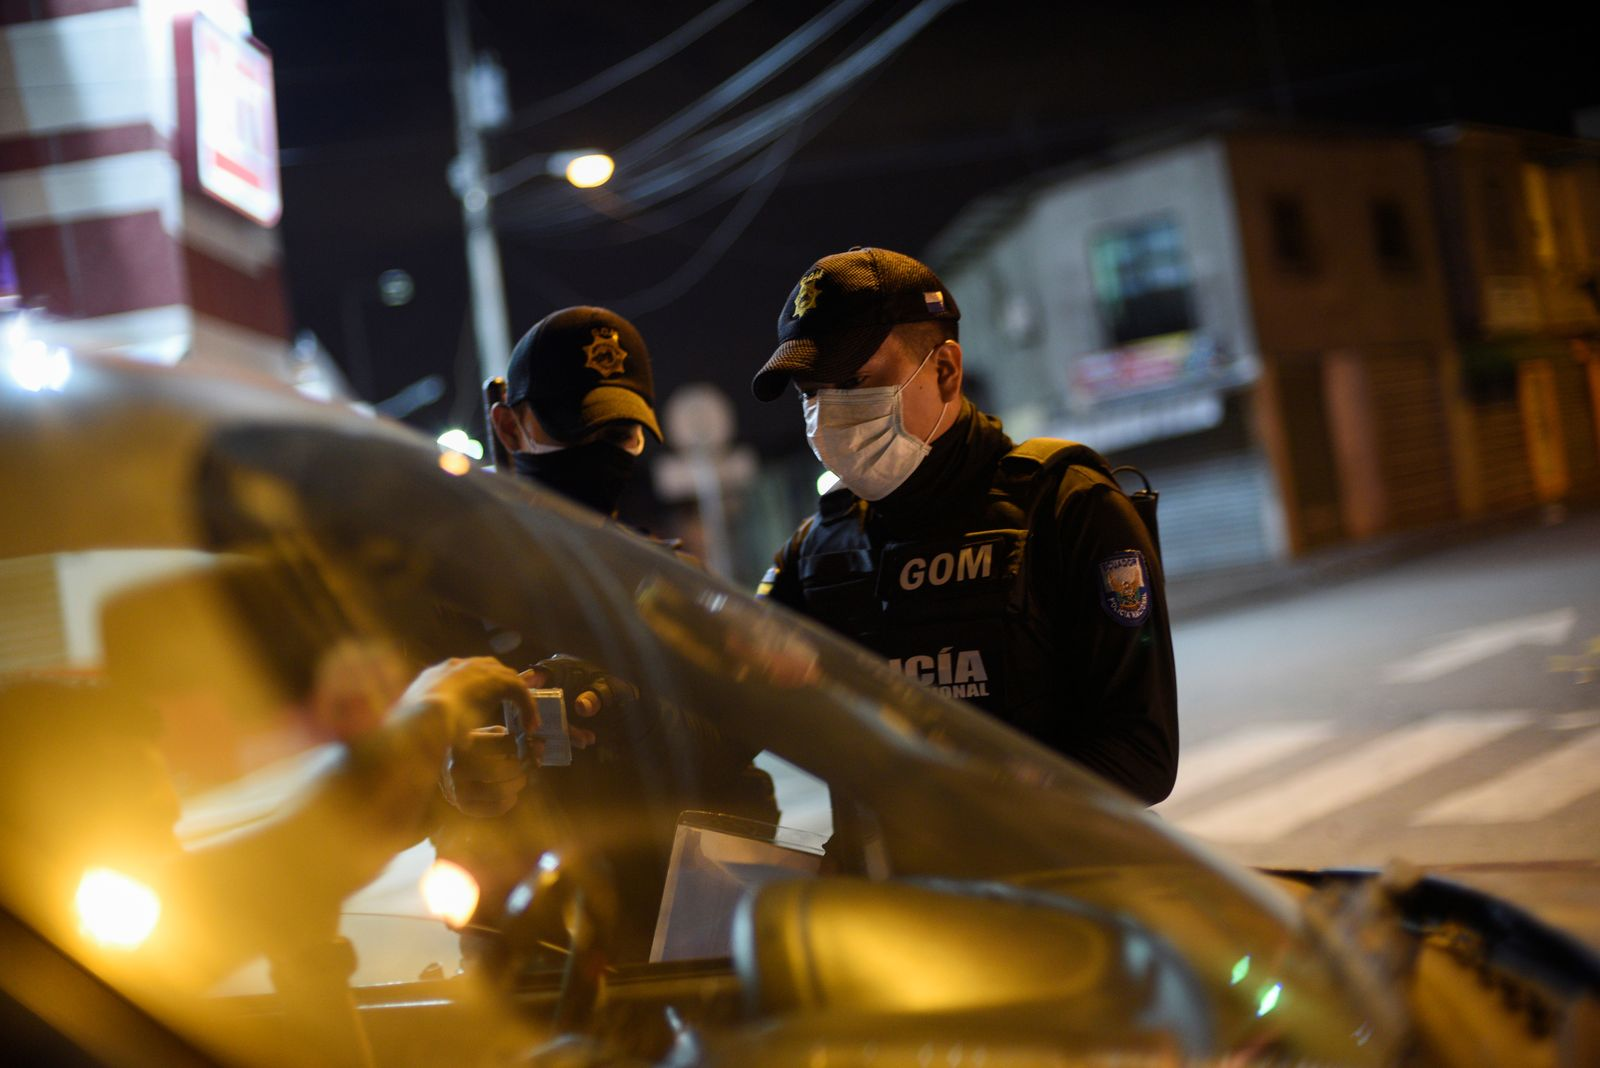 Police officers stop a car at a checkpoint after Ecuador's government imposed a night curfew to prevent the spread of the coronavirus disease (COVID-19), in Guayaquil